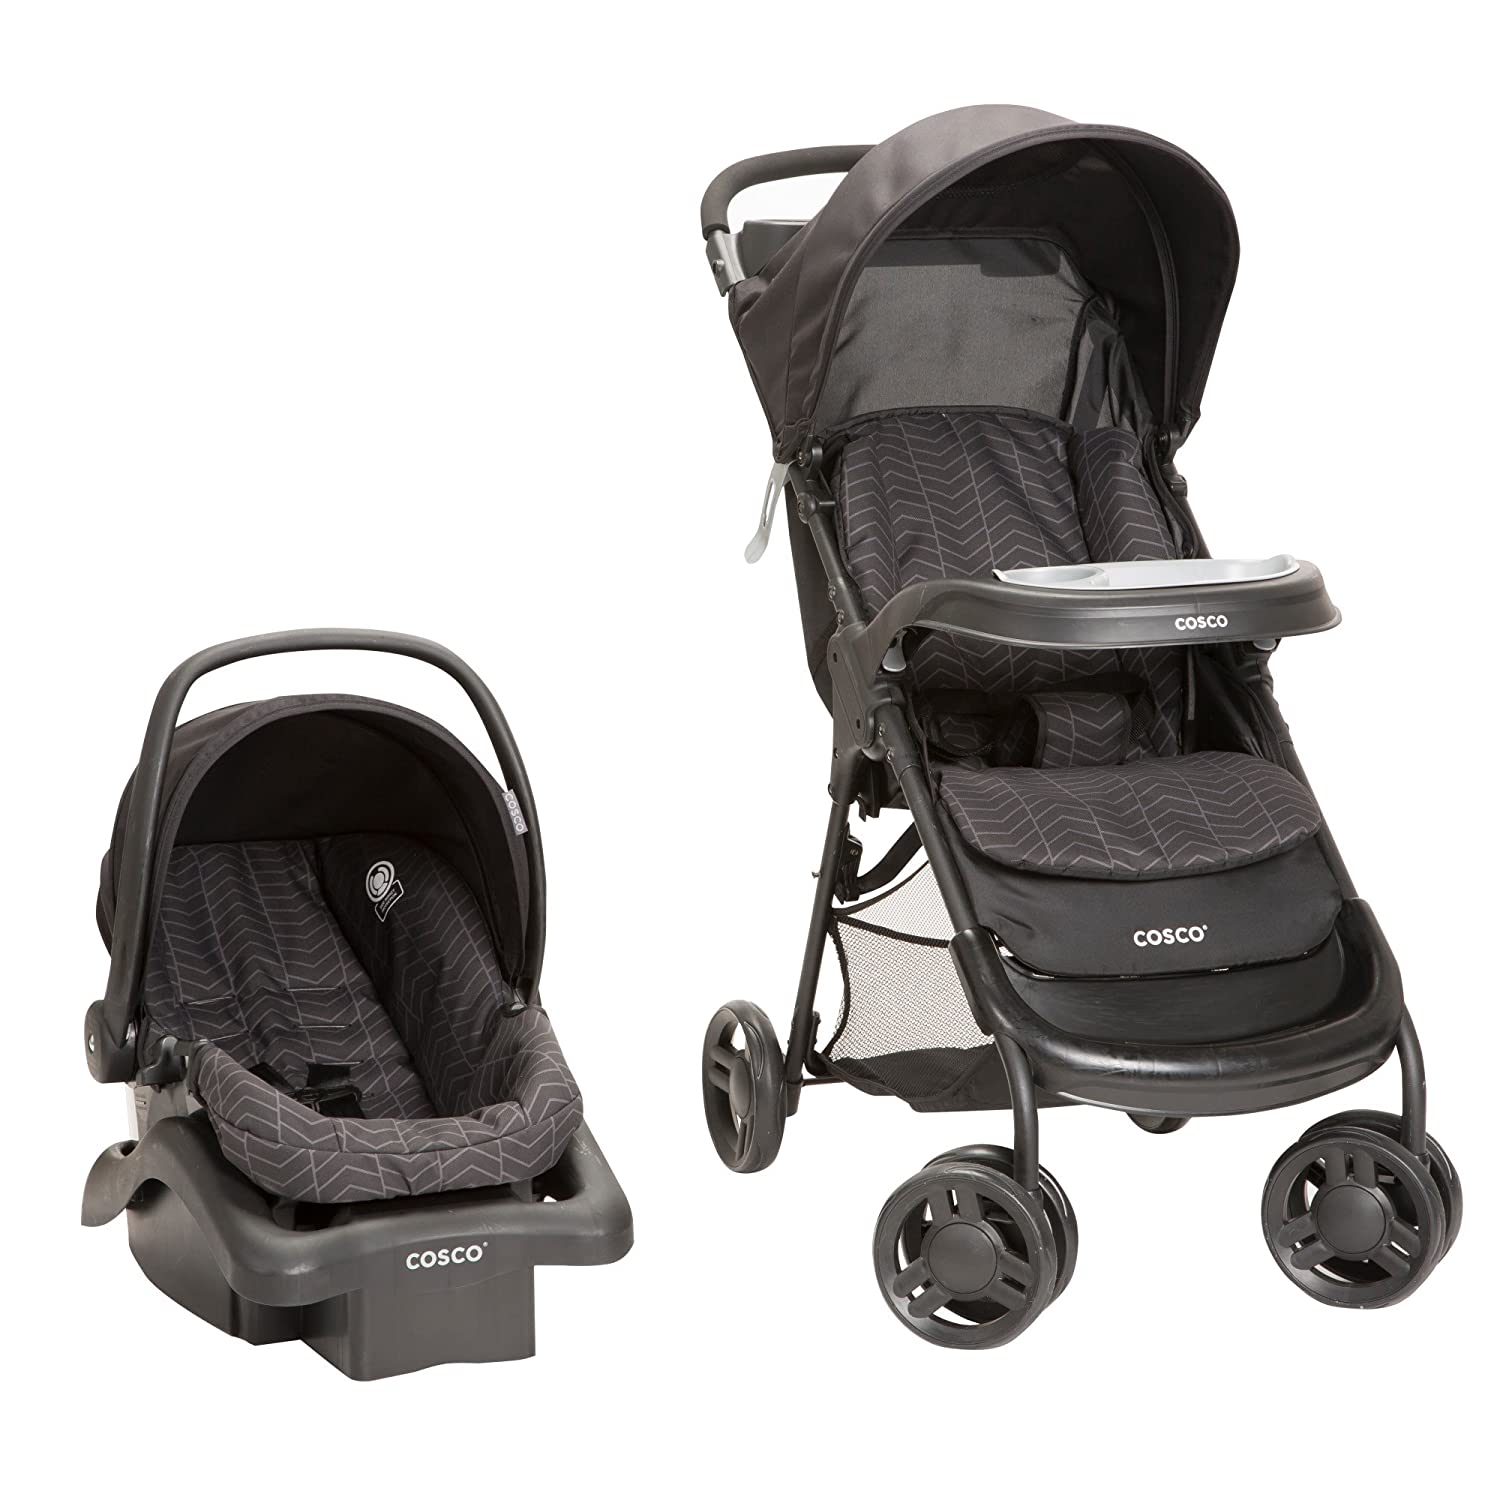 Cosco Lift and Stroll Plus Travel System with Light 'N Comfy Infant Car Seat, Black Arrows Cosco Inc TR372DFL